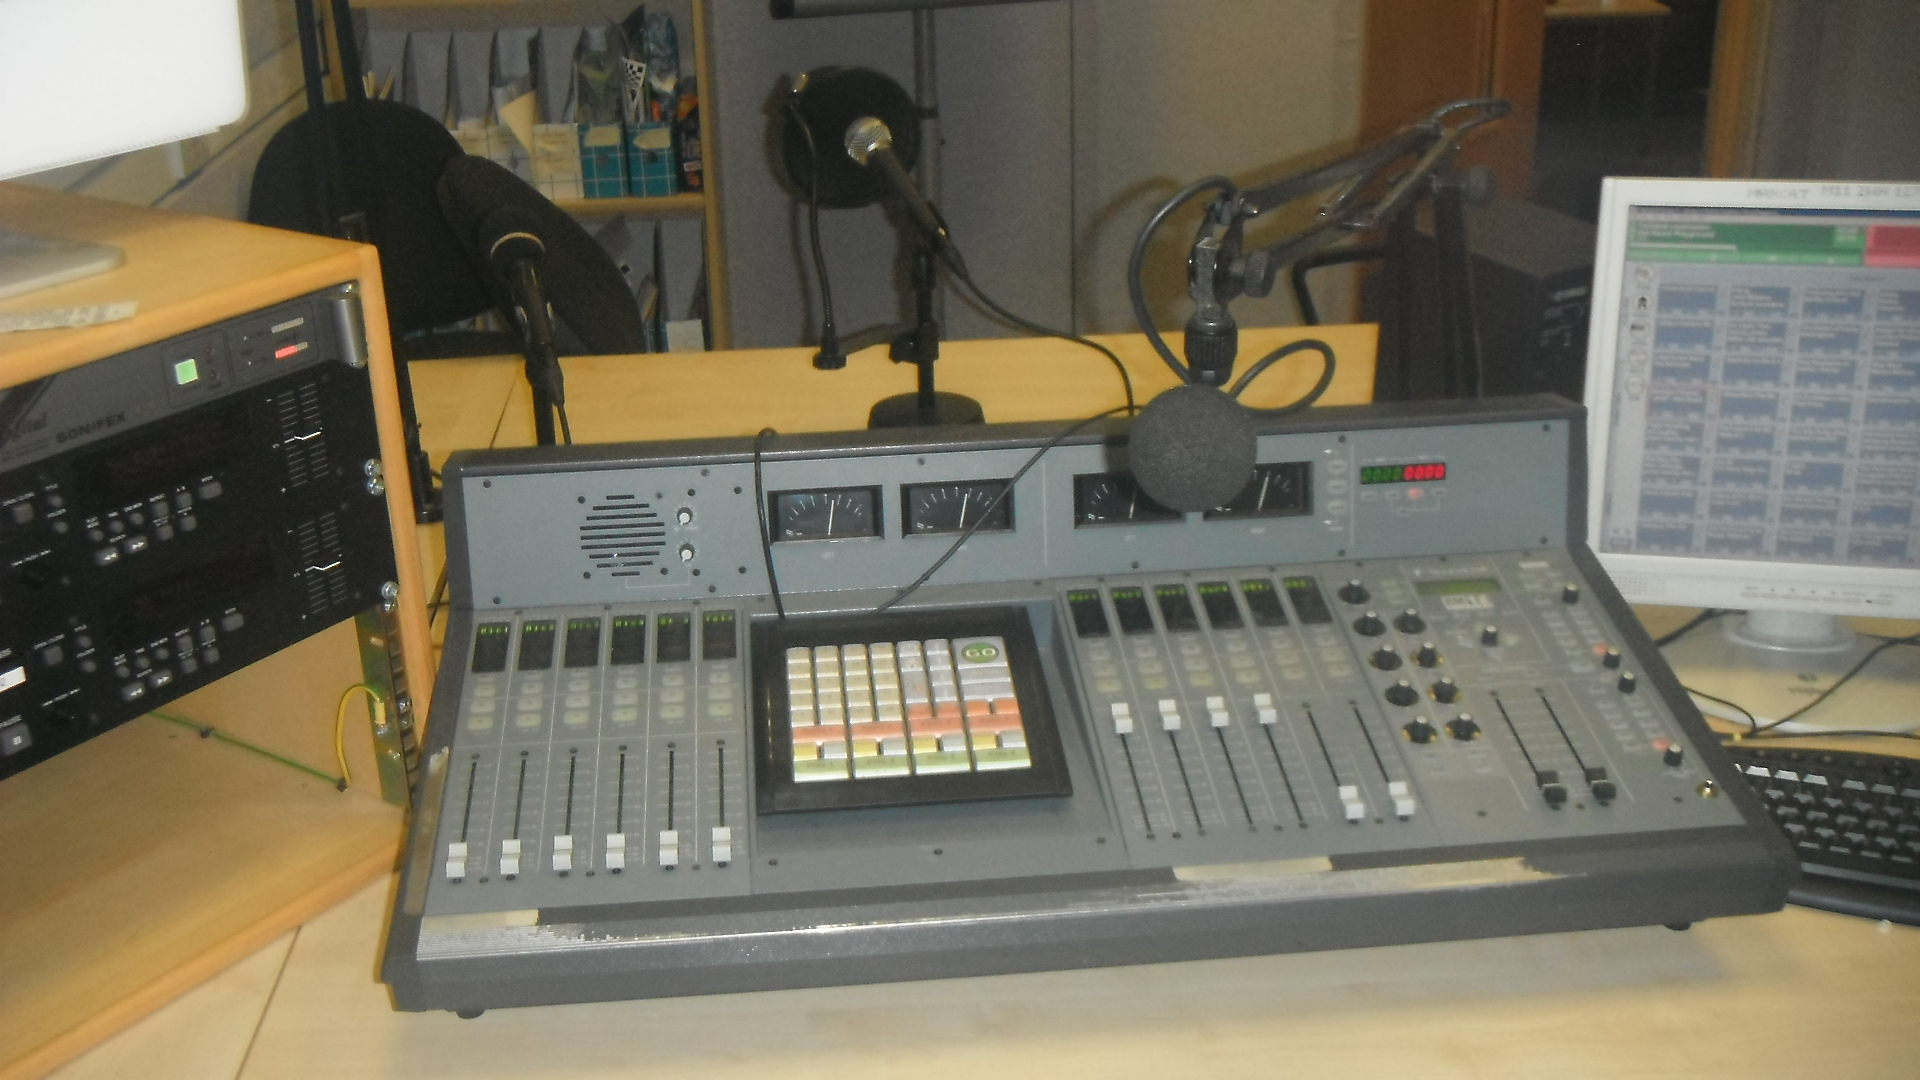 radio studio equiptment, as used by and photographed by me